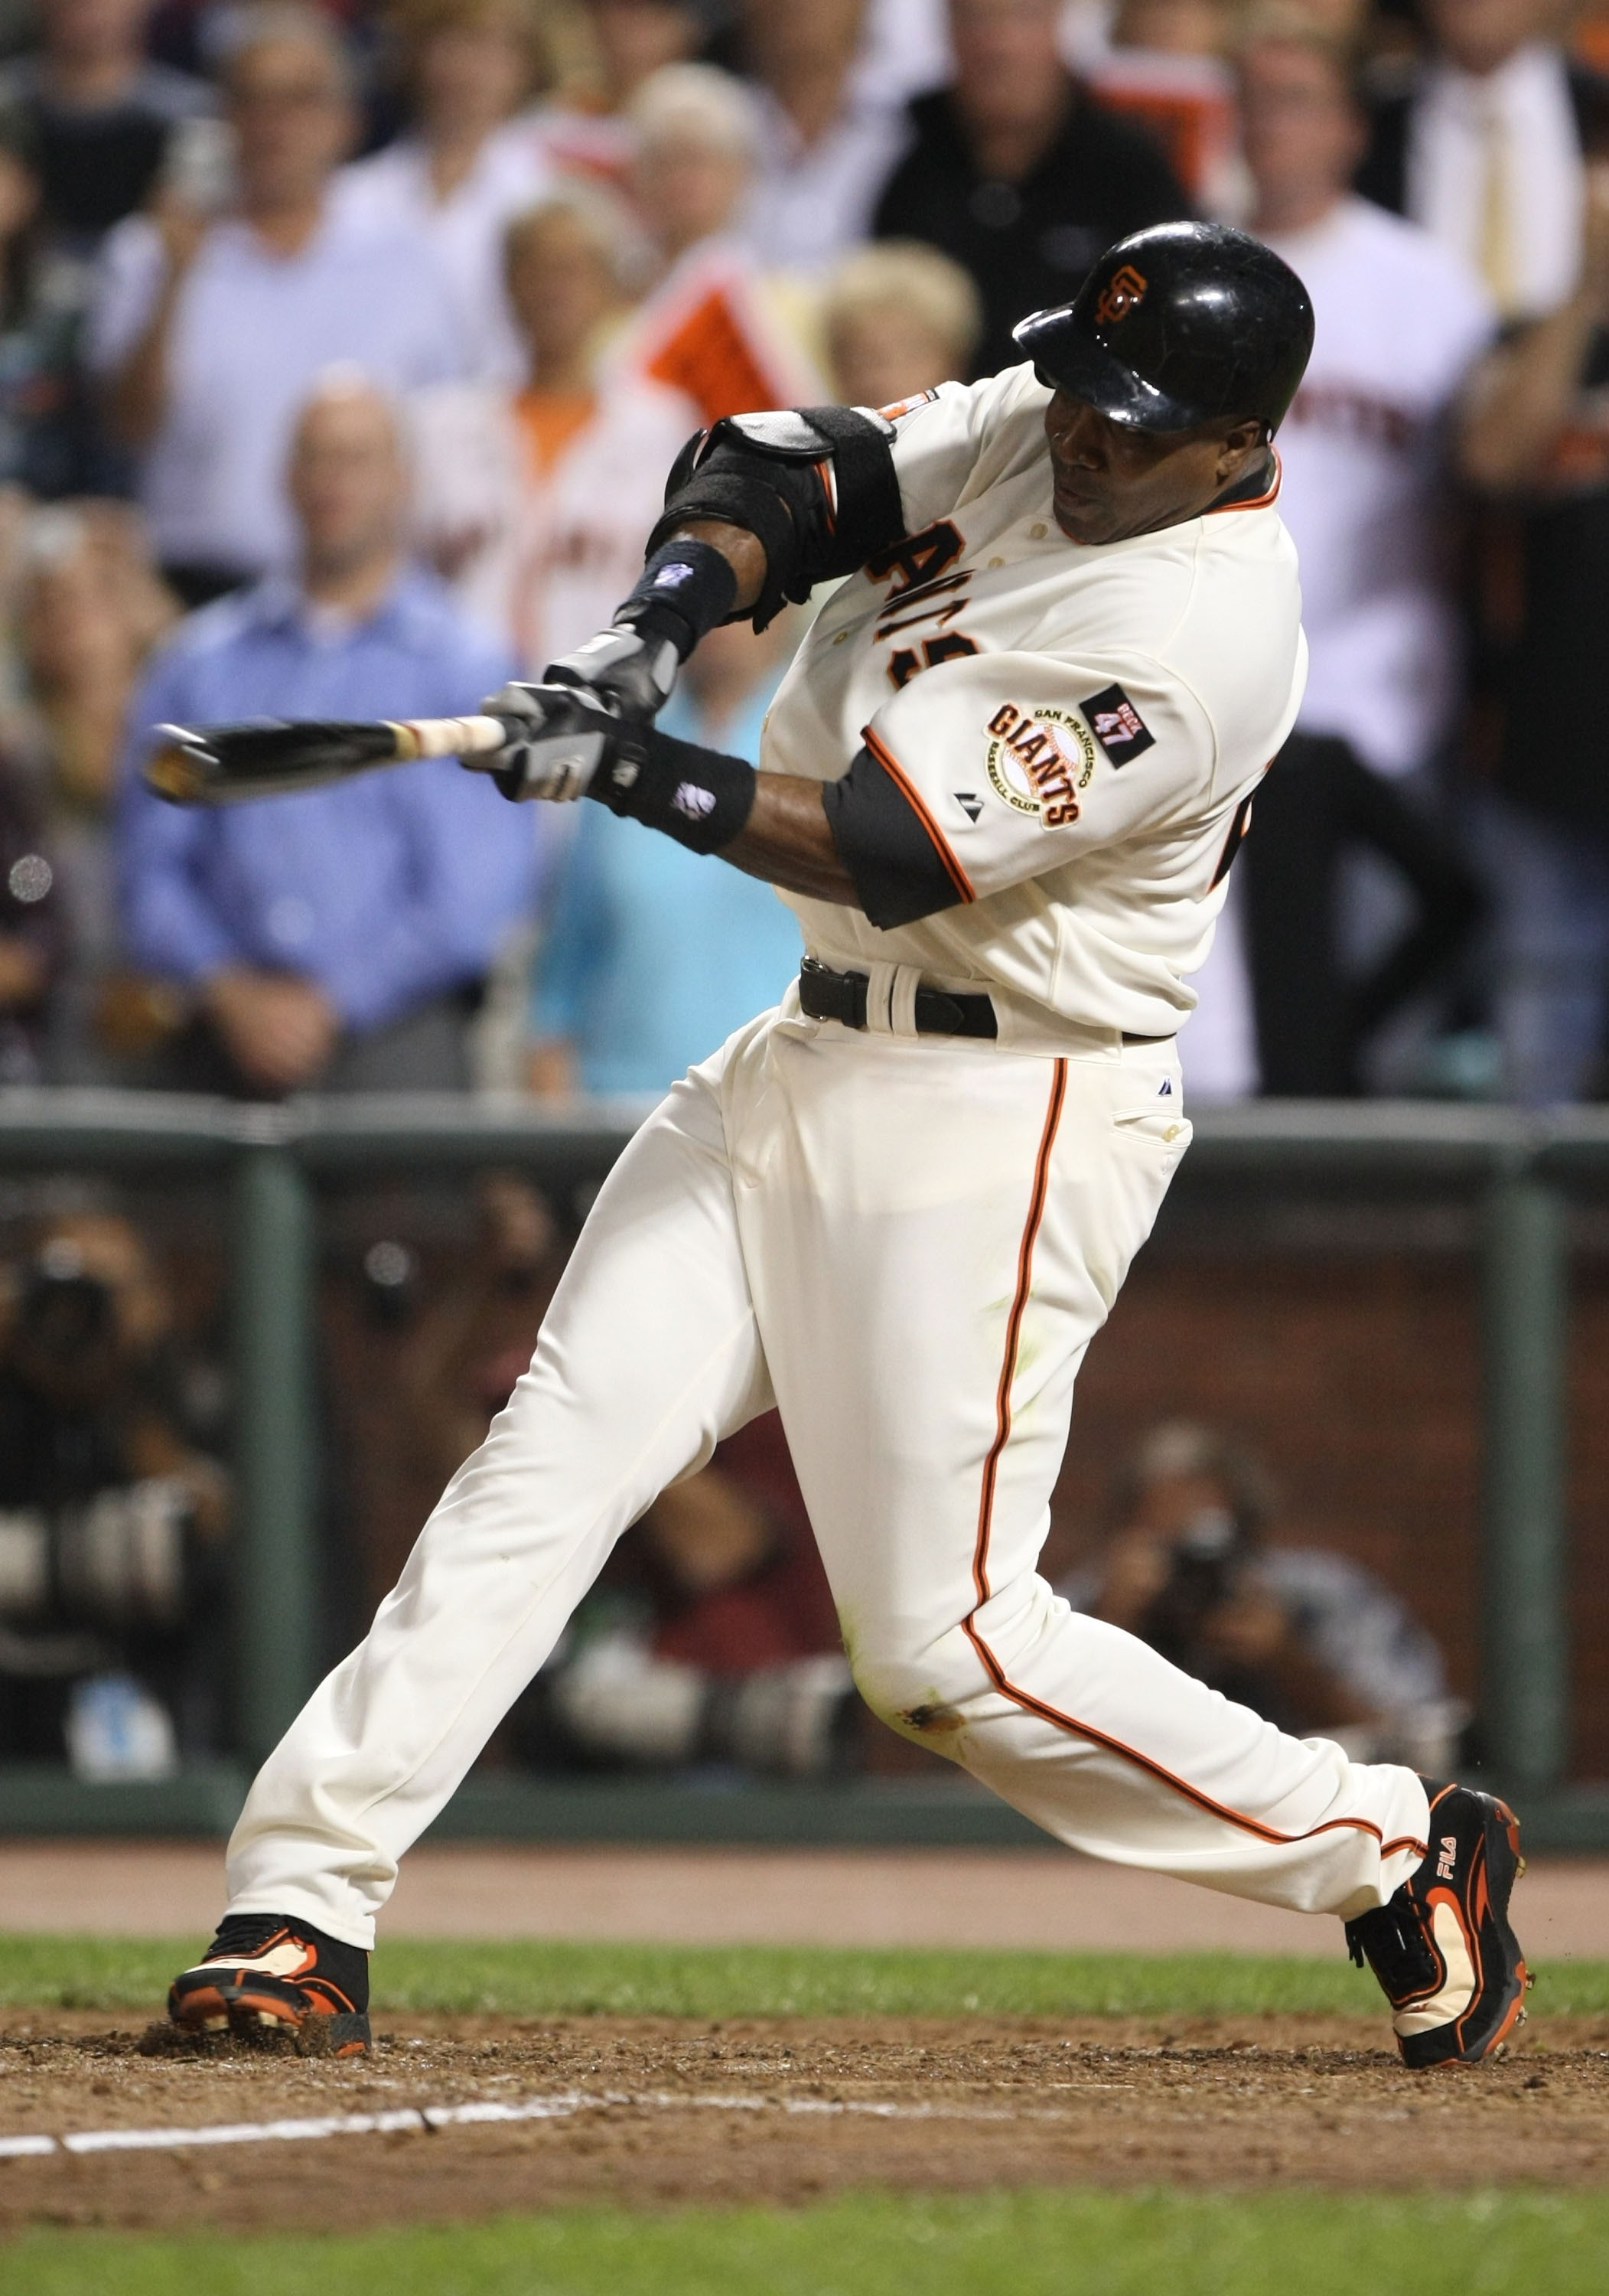 SAN FRANCISCO - SEPTEMBER 26:  Barry Bonds #25 of the San Francisco Giants flies out during his final home at bat as a Giant against the San Diego Padres during a Major League Baseball game on September 26, 2007 at AT&T Park in San Francisco, California.